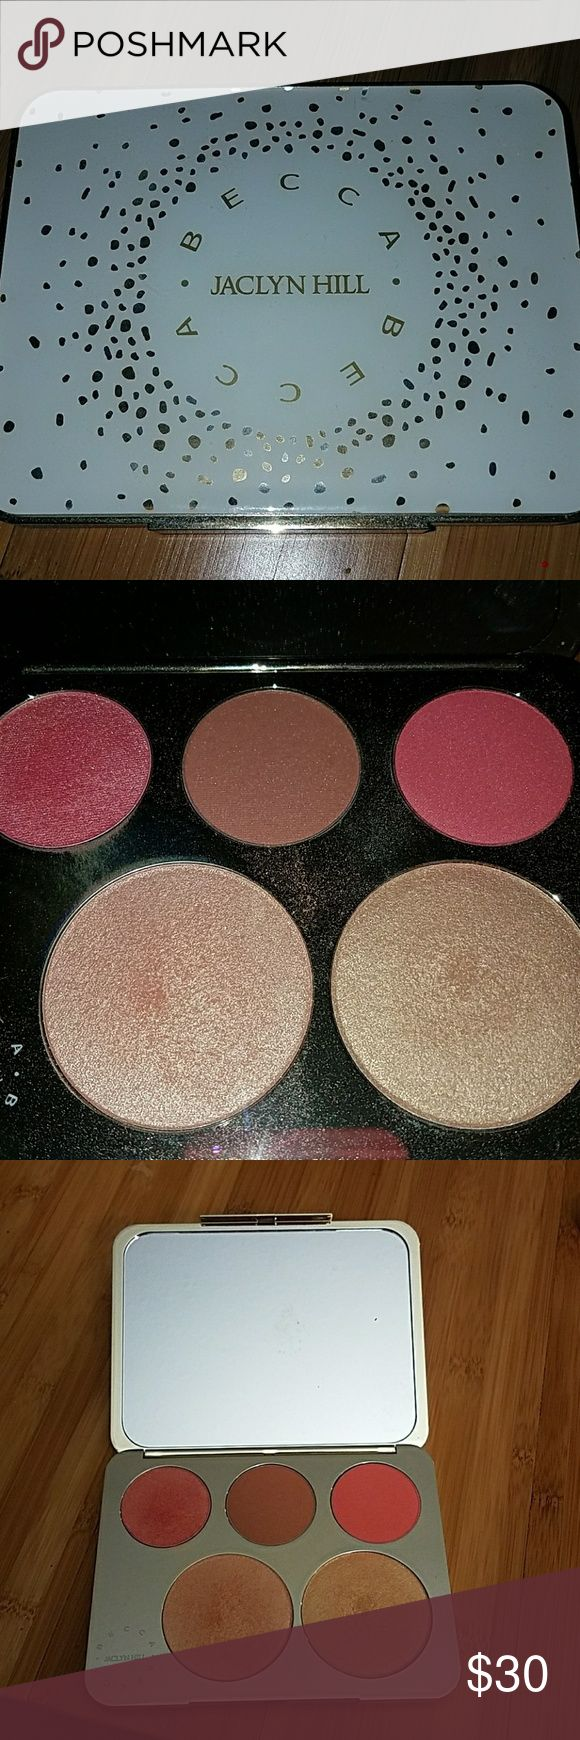 Becca ? Jaclyn Hill face palette CONDITION: this item is NOT new, this is pre loved but in like new condition!  ITEM: Some of the blushes haven't been touched, the box and protective layer will be included upon purchase. BECCA Makeup Blush